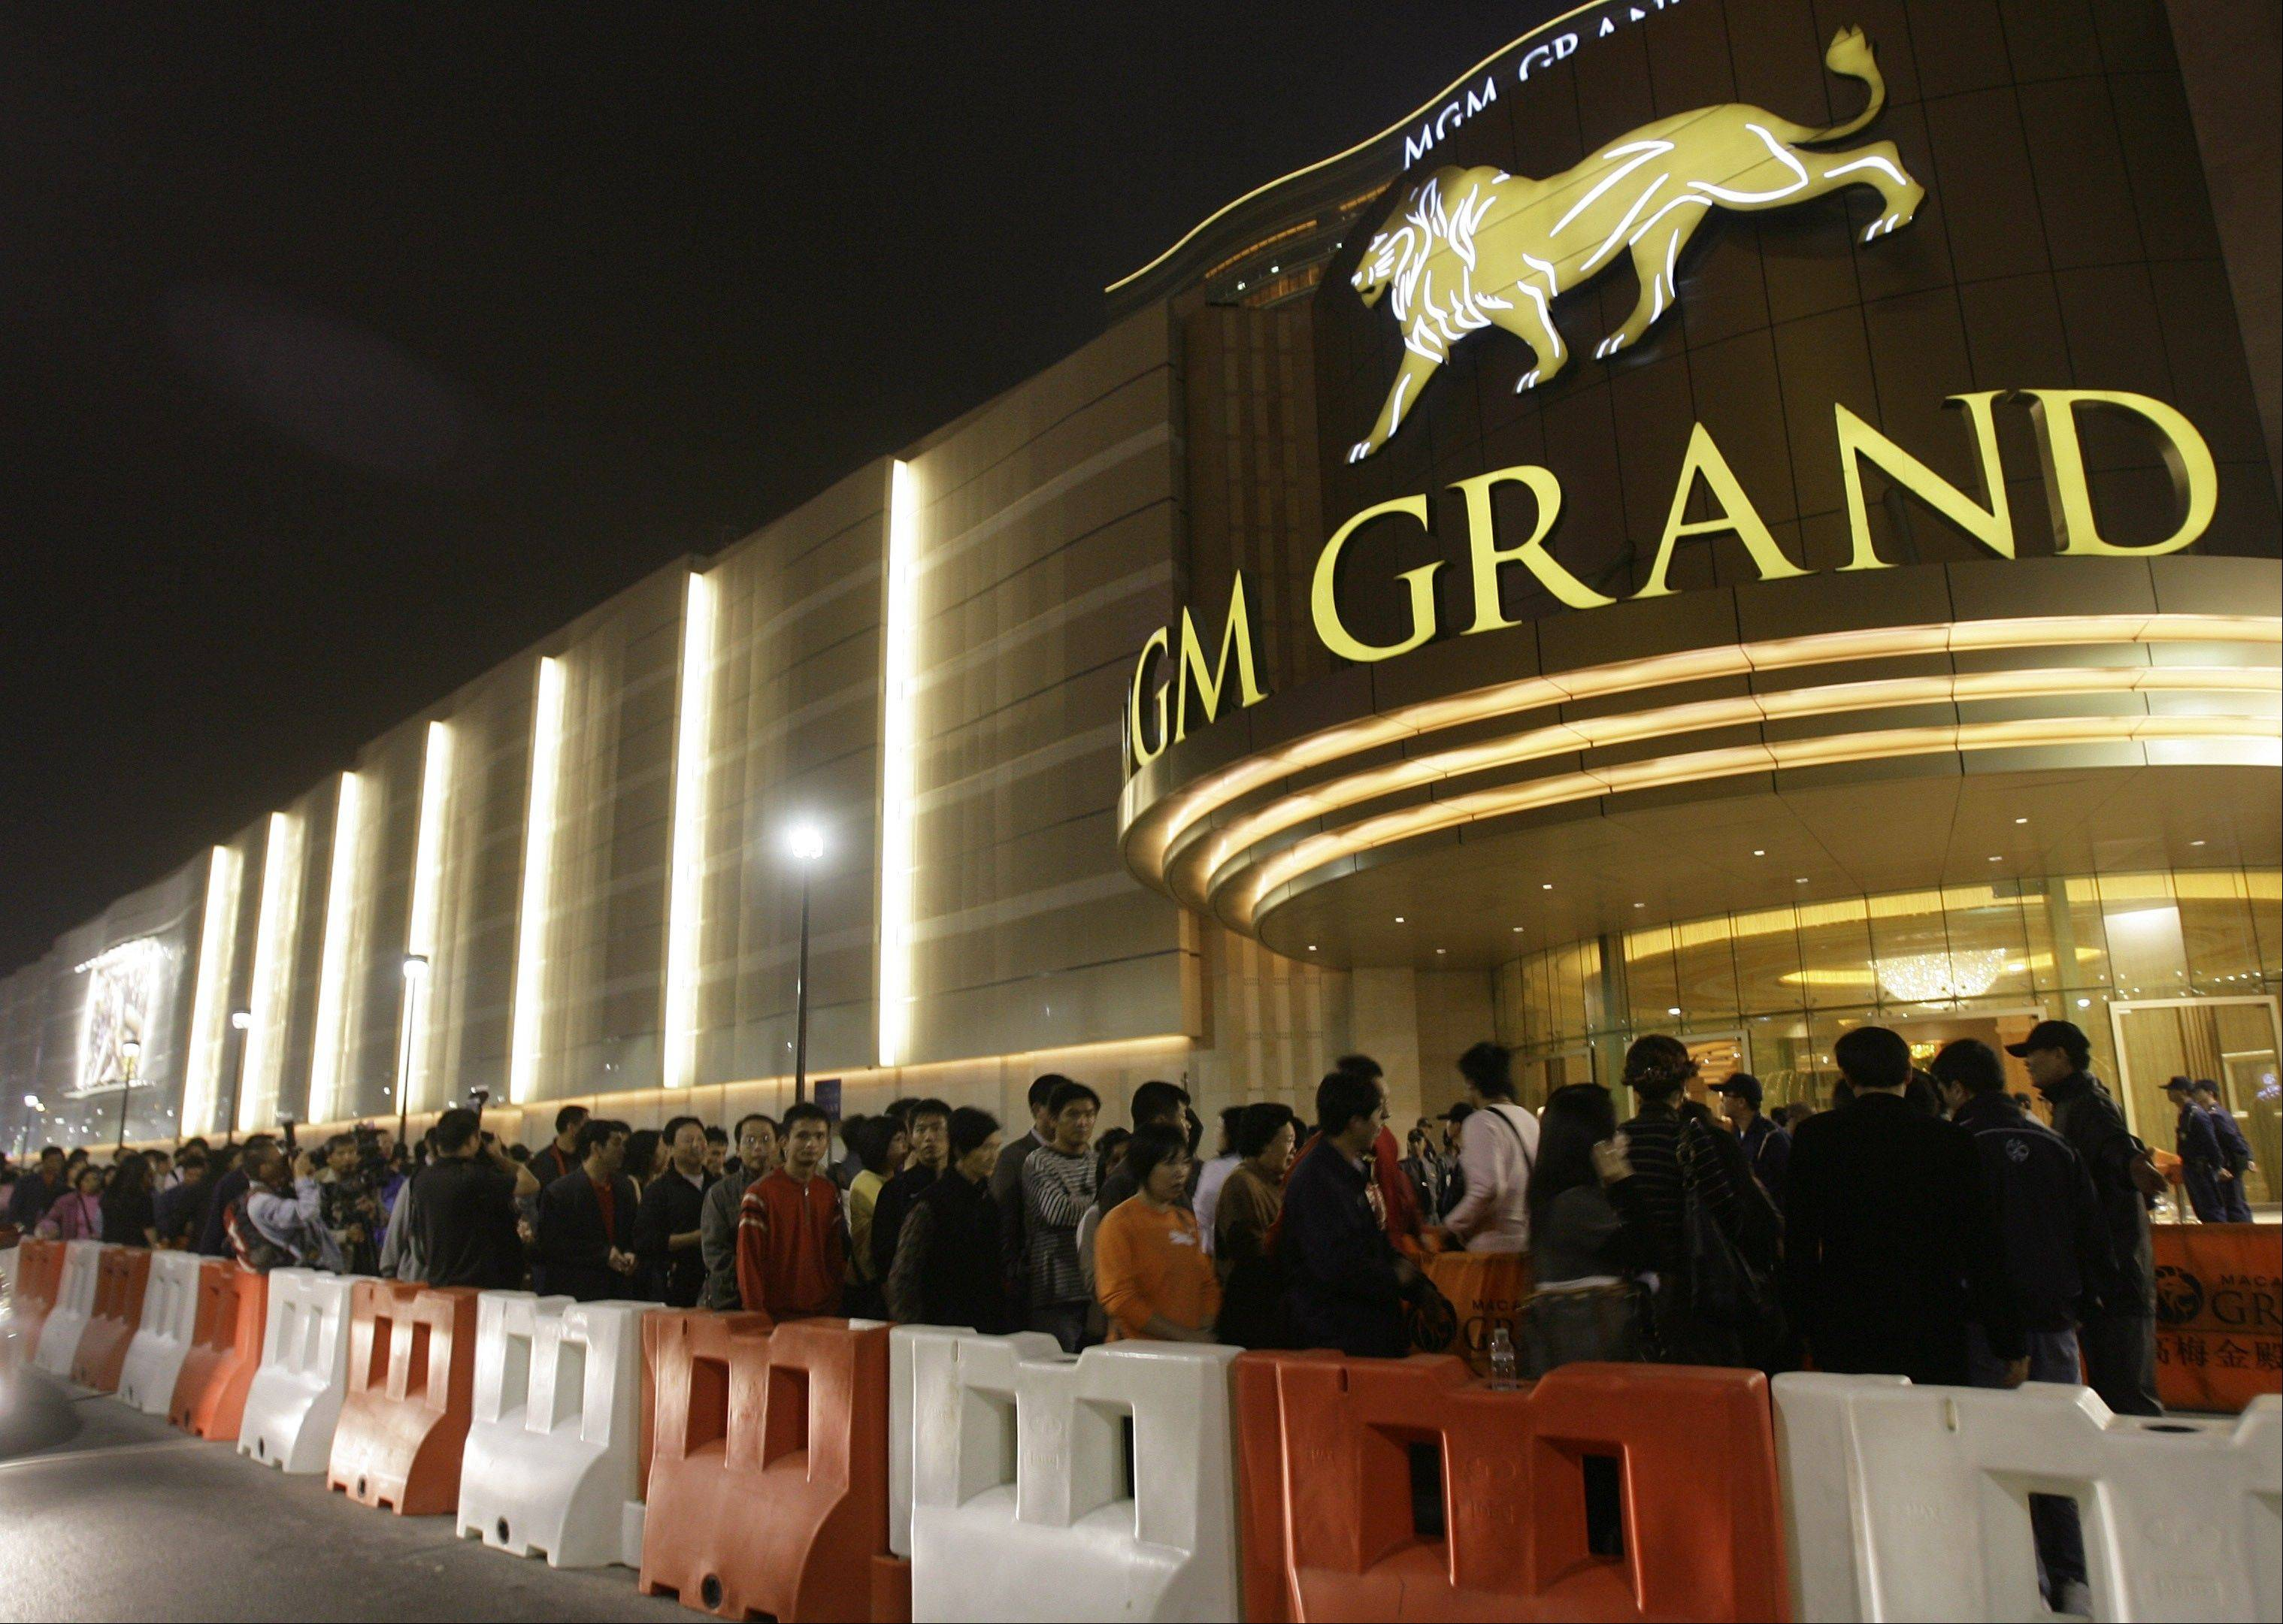 Visitors queue up to enter the new MGM Grand Macau casino resort in 2007. The Chinese arm of U.S. casino company MGM Resorts International won official approval for its new casino-resort in the world's most lucrative gambling market, Macau.